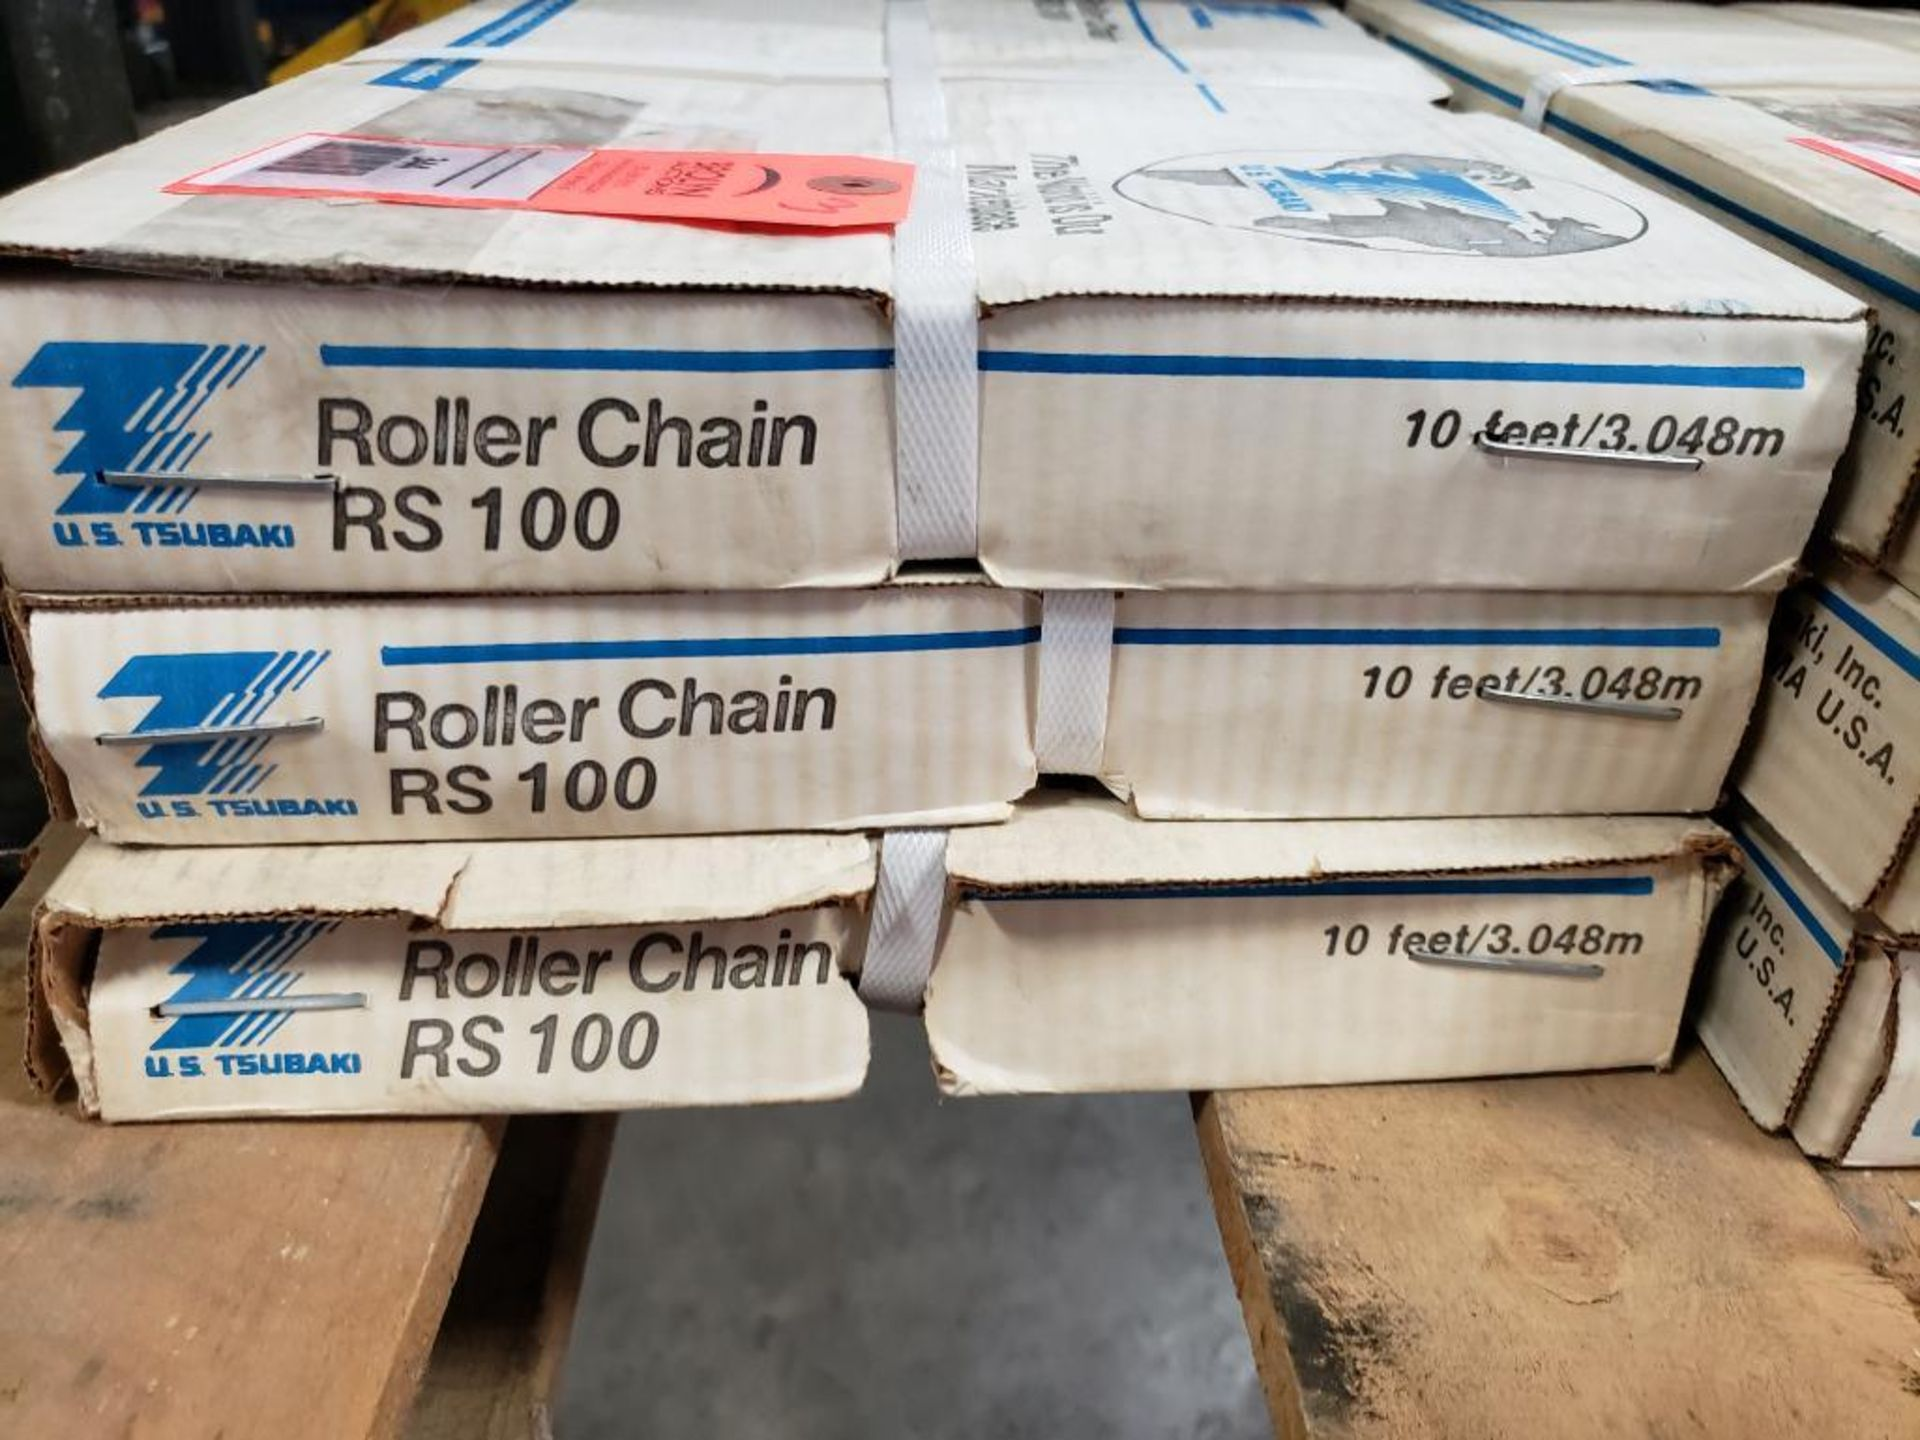 Qty 3 - 10FT US Tsubaki RS100 Roller Chain. New in Box. - Image 2 of 3